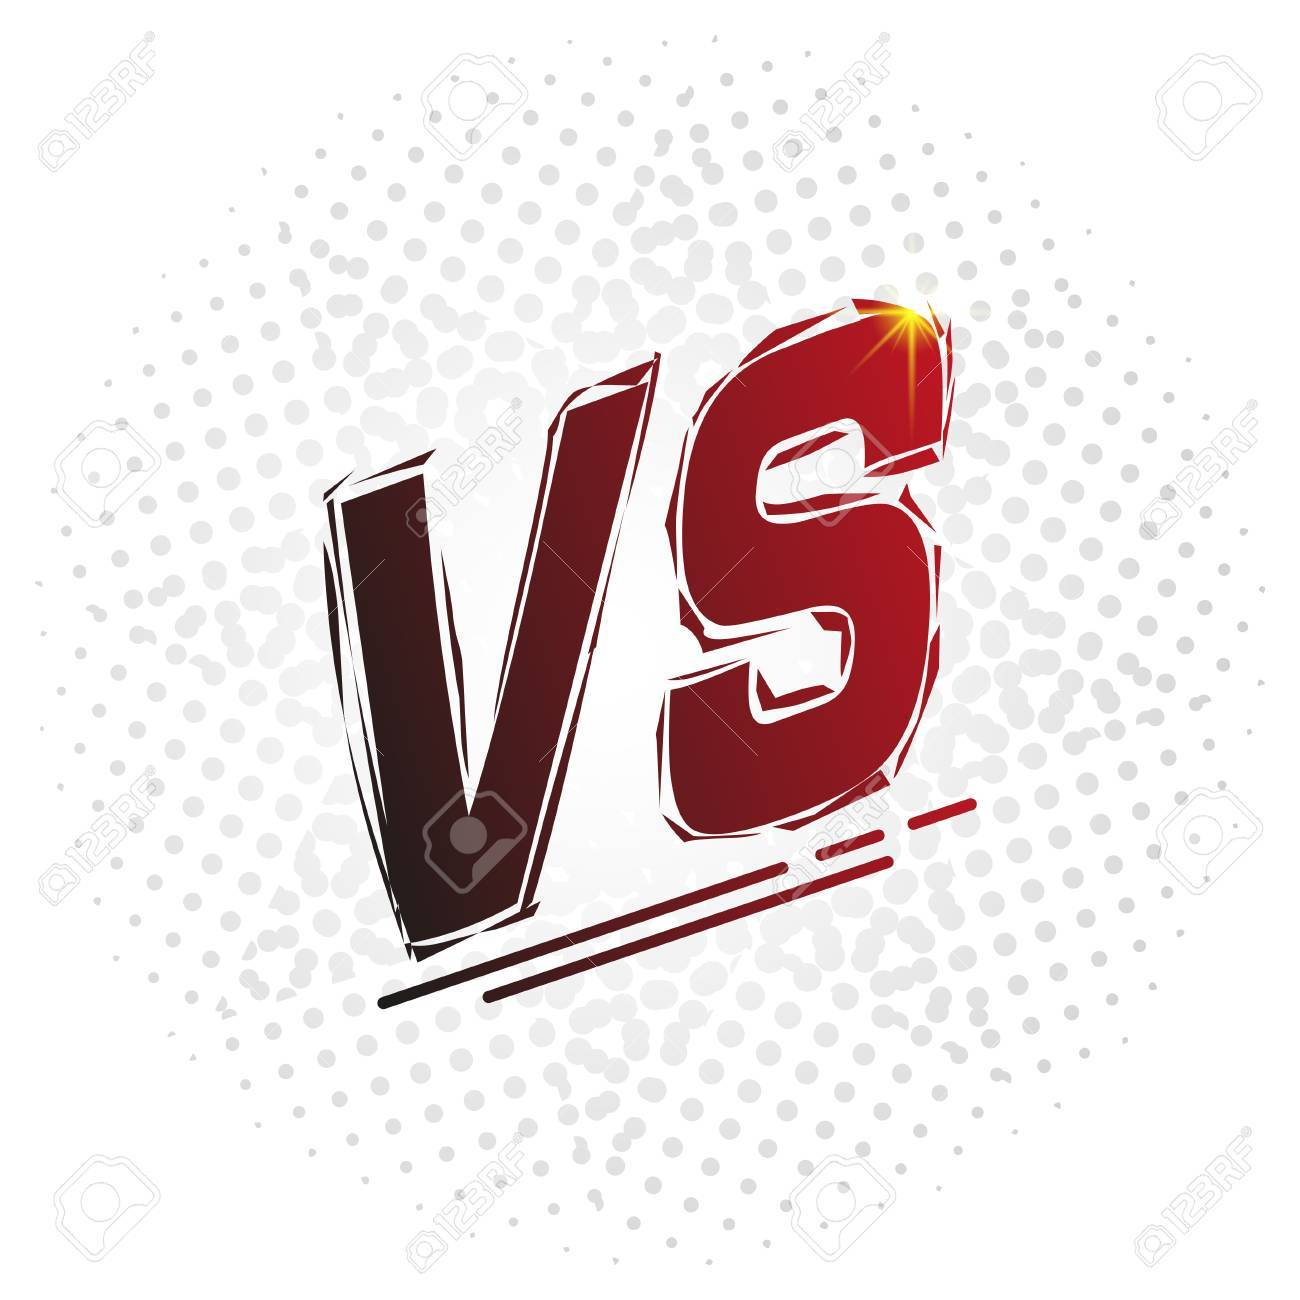 / Vs Versus Screen Vs Letters Competition Vs Match Game Martial